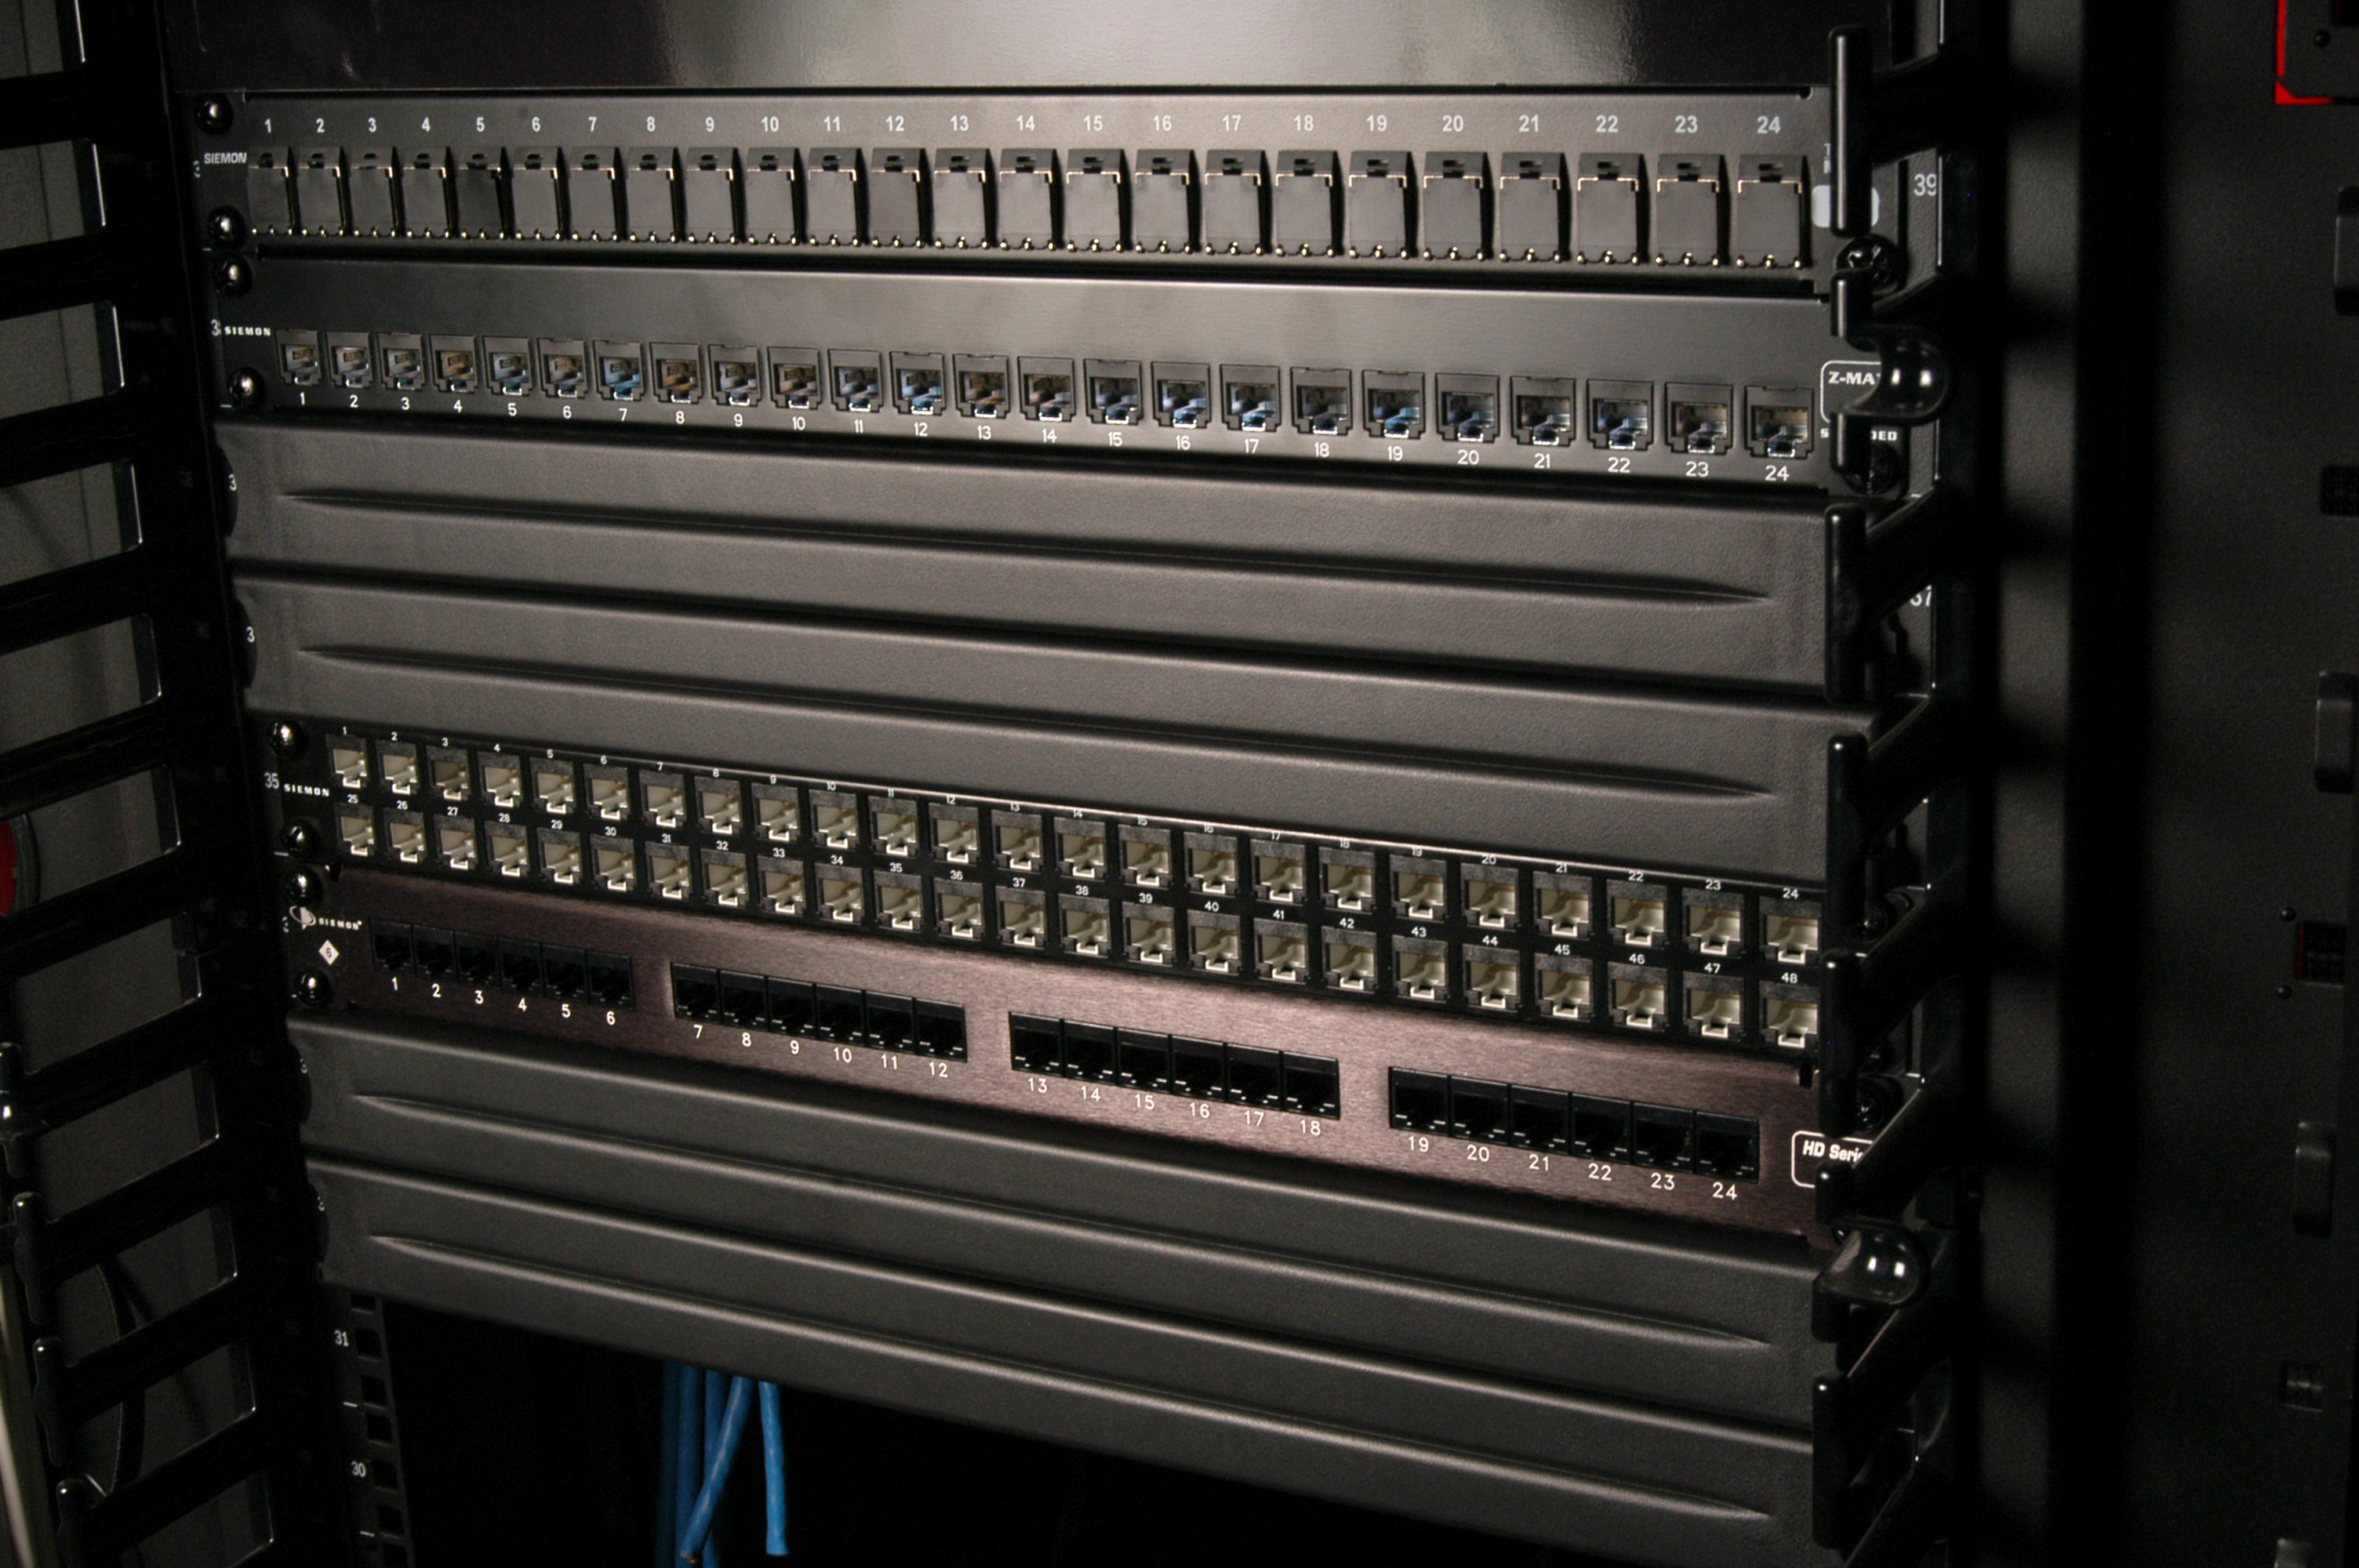 Siemon Expands Data Center Airflow Solutions With Toolless